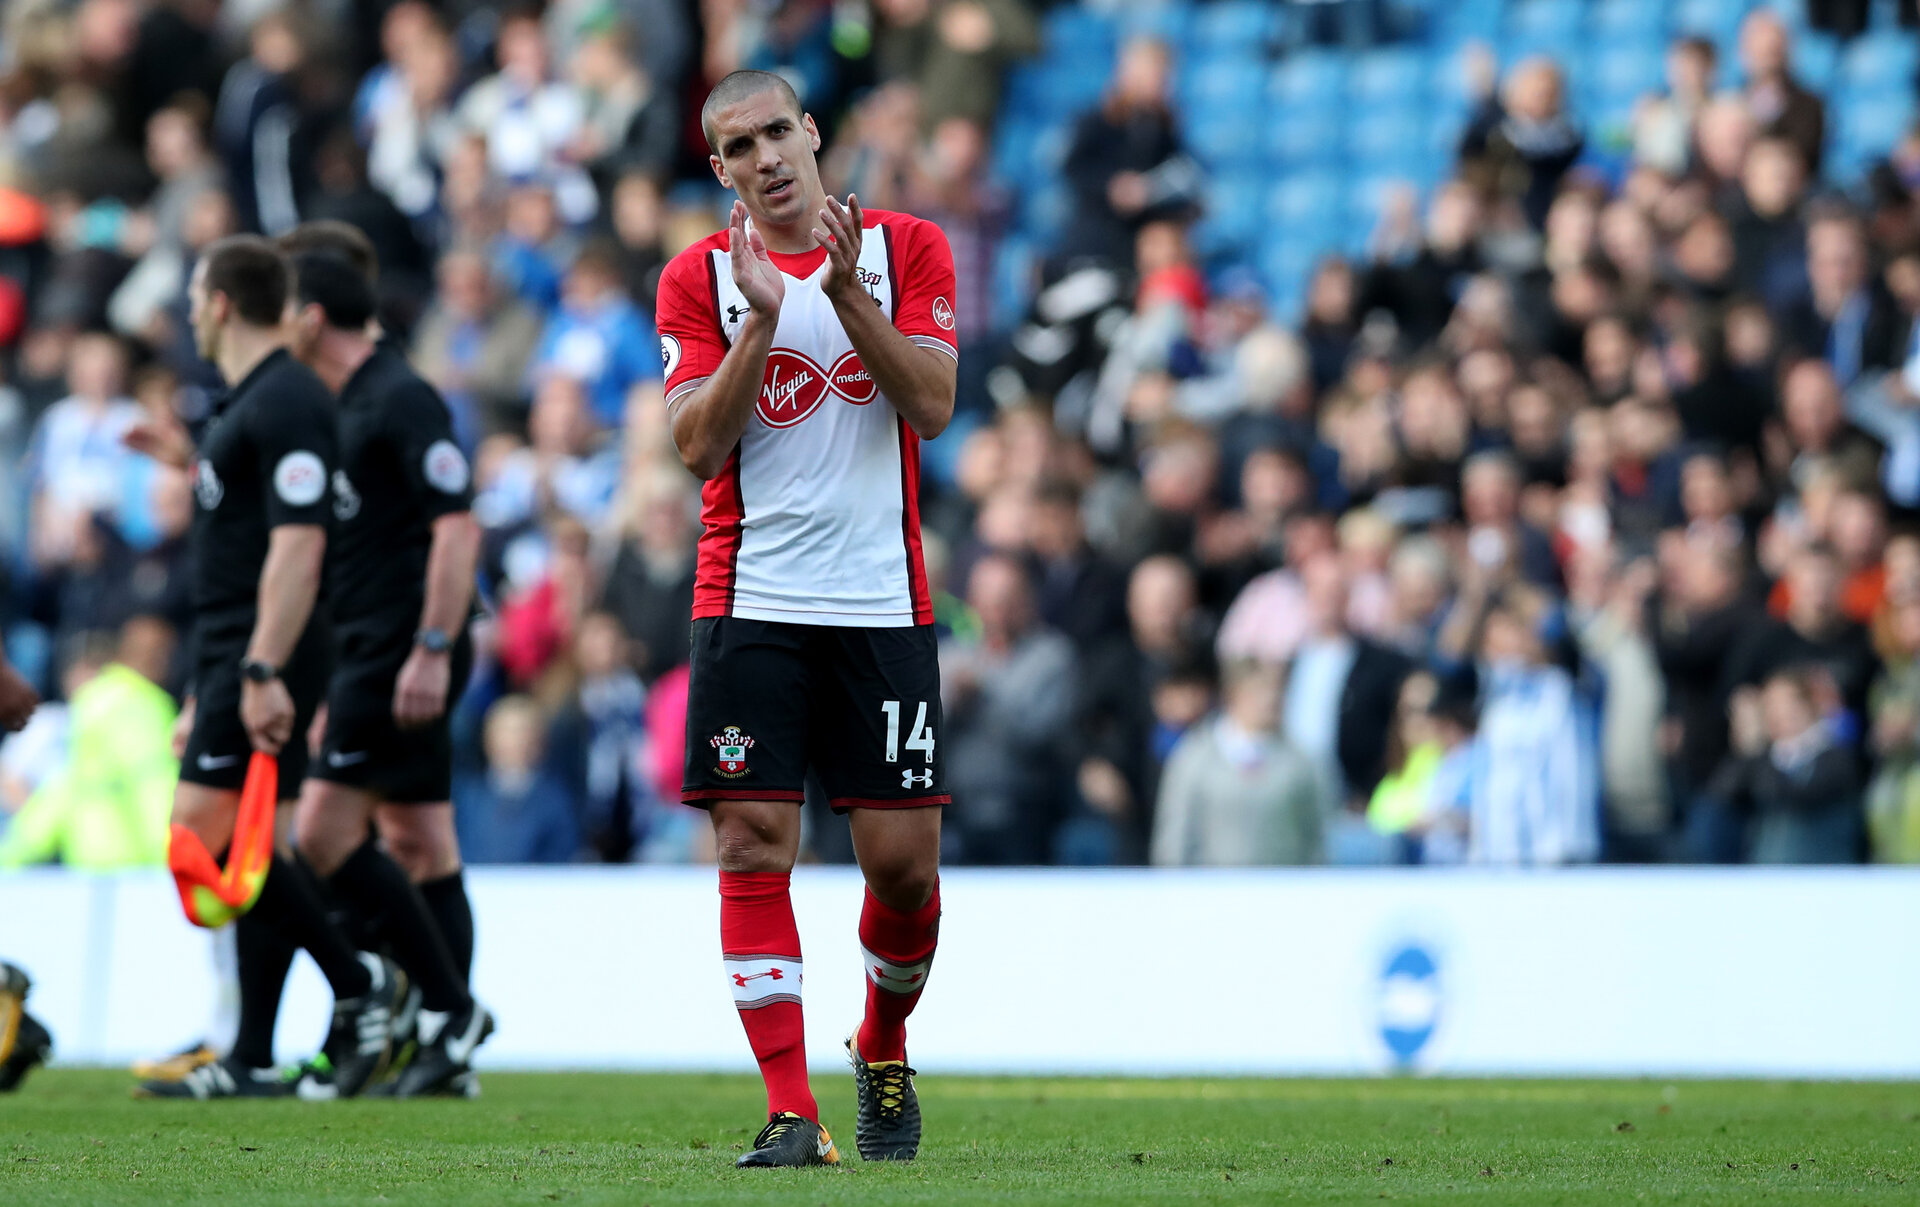 BRIGHTON, ENGLAND - OCTOBER 29: Oriol Romeu during the Premier League match between Brighton and Hove Albion and Southampton at the Amex Stadium on October 29, 2017 in Brighton, England. (Photo by Matt Watson/Southampton FC via Getty Images)